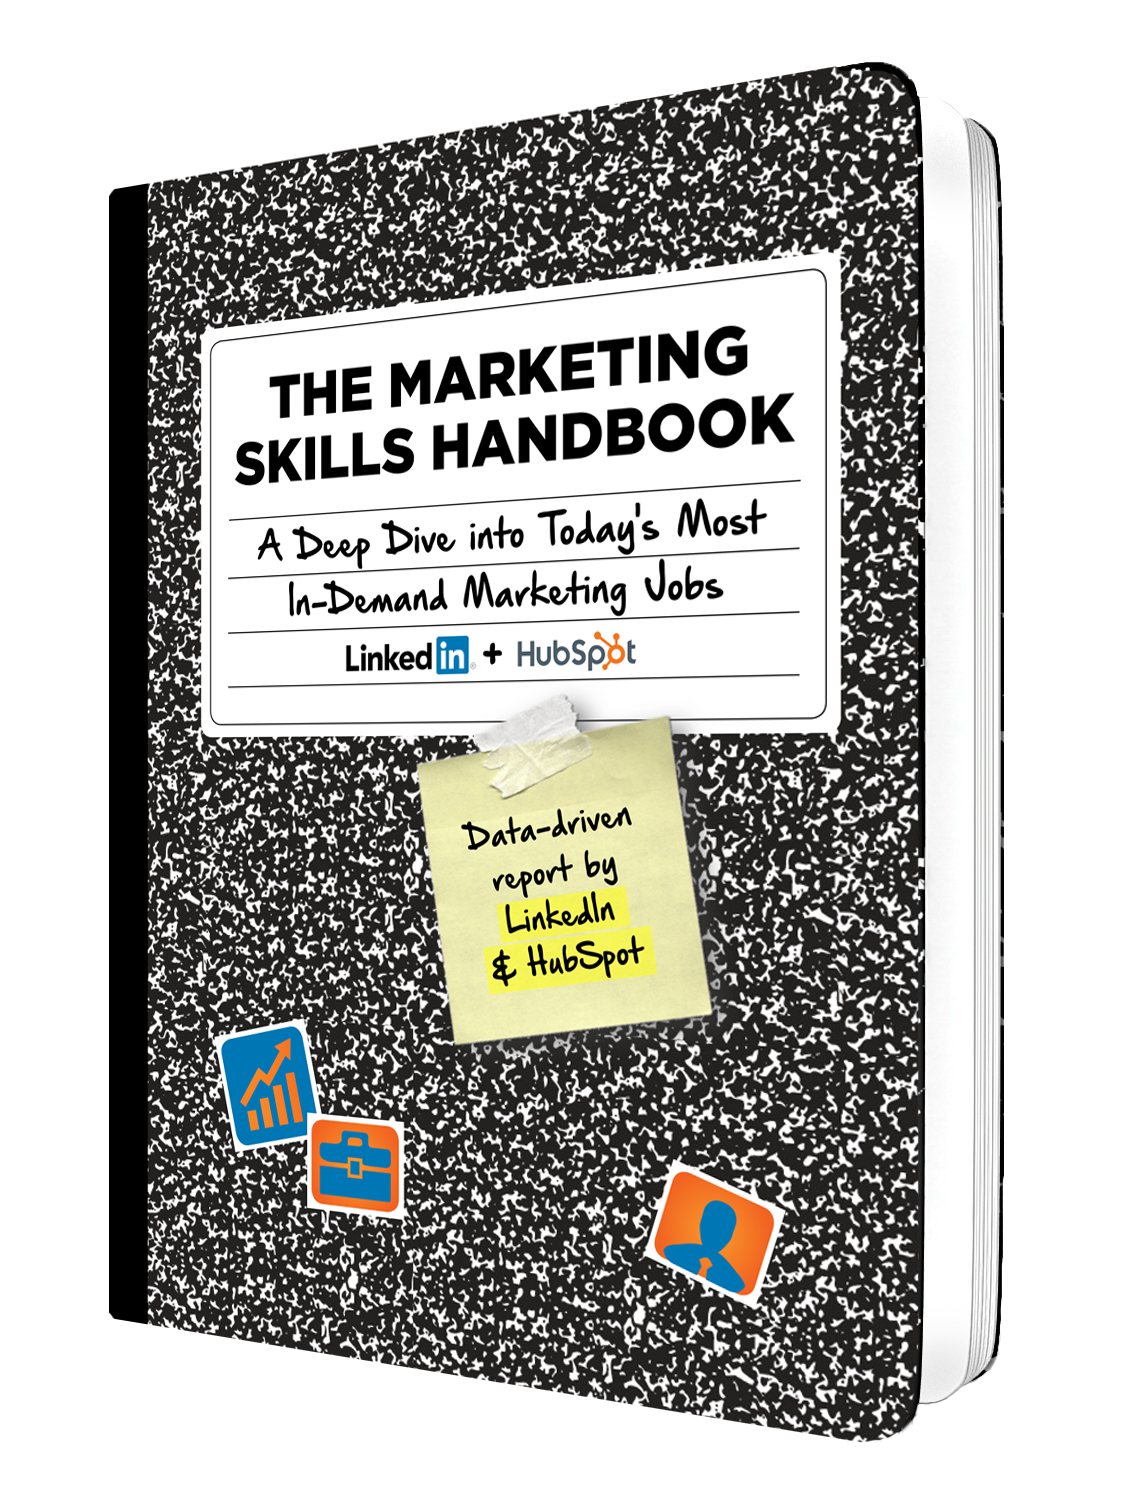 The Marketing Skills Handbook: A Deep Dive into Today's Most In-Demand Marketing Jobs